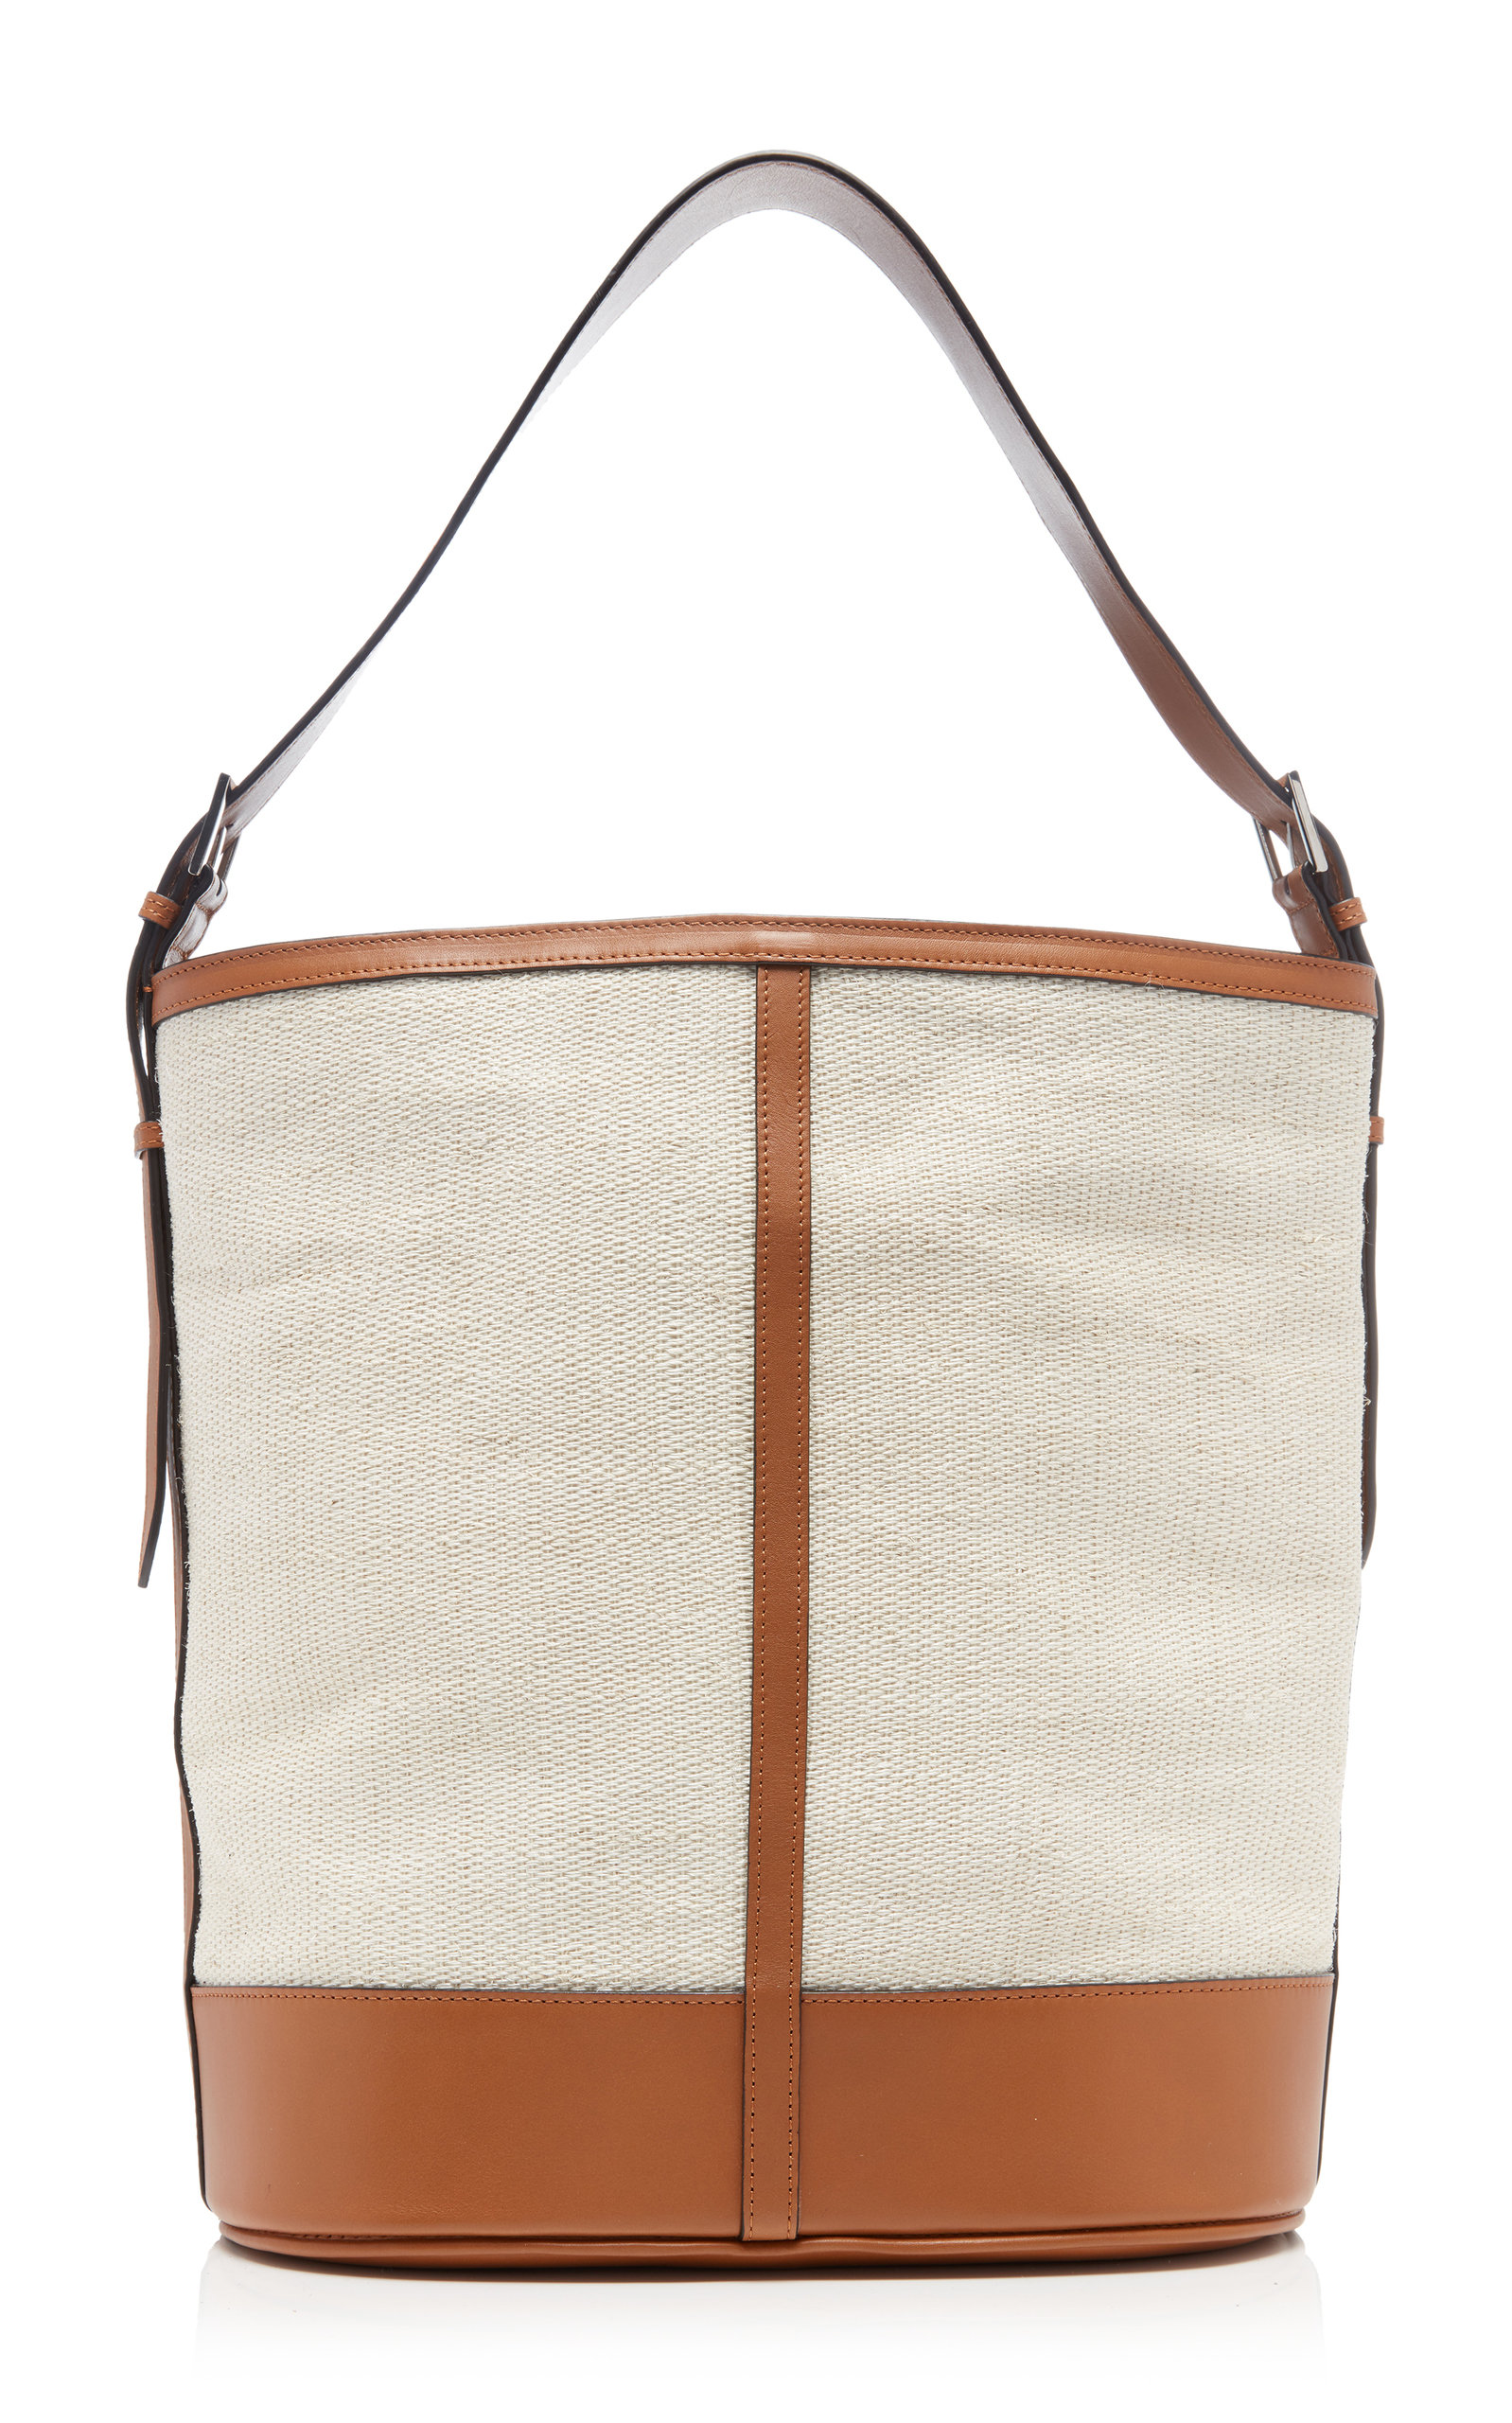 Hunting Season Canvases LEATHER-TRIMMED FIQUE AND CANVAS TOTE BAG